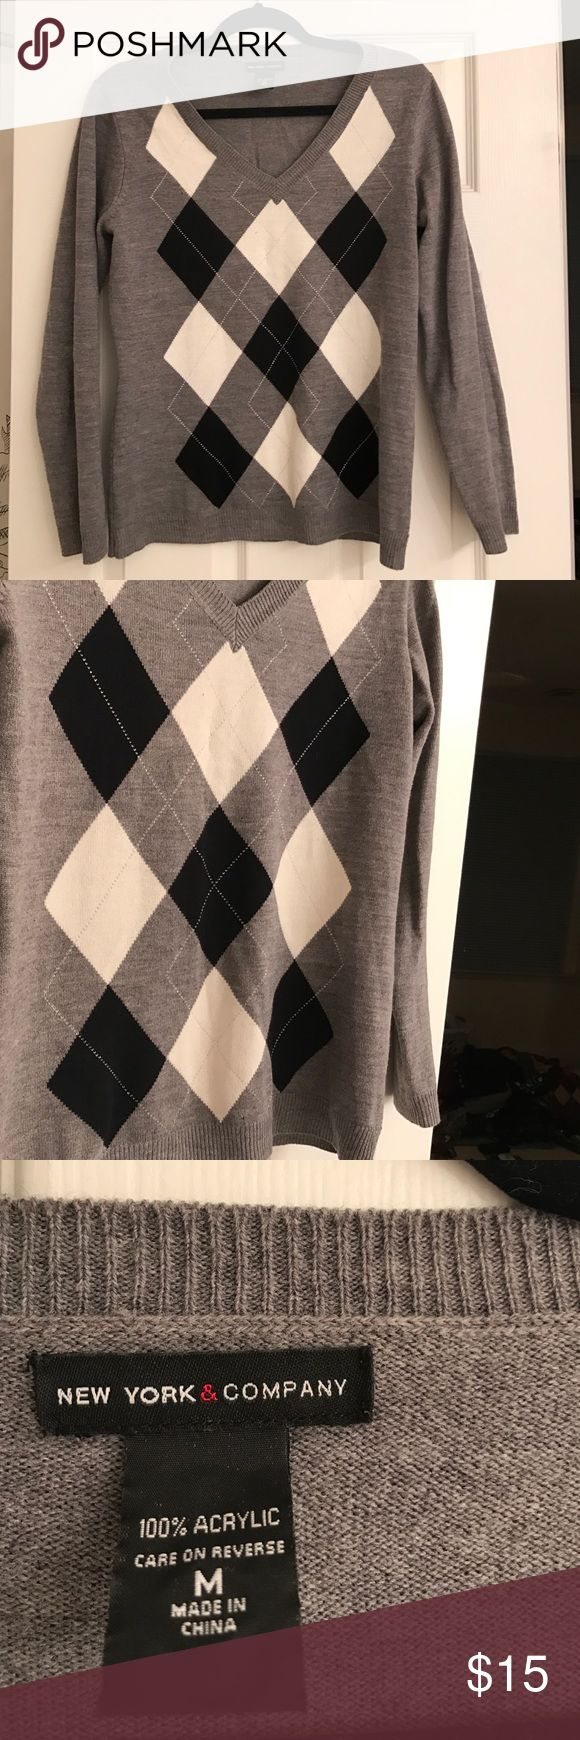 New York and Co argyle sweater Barely worn argyle sweater New York & Company Sweaters V-Necks